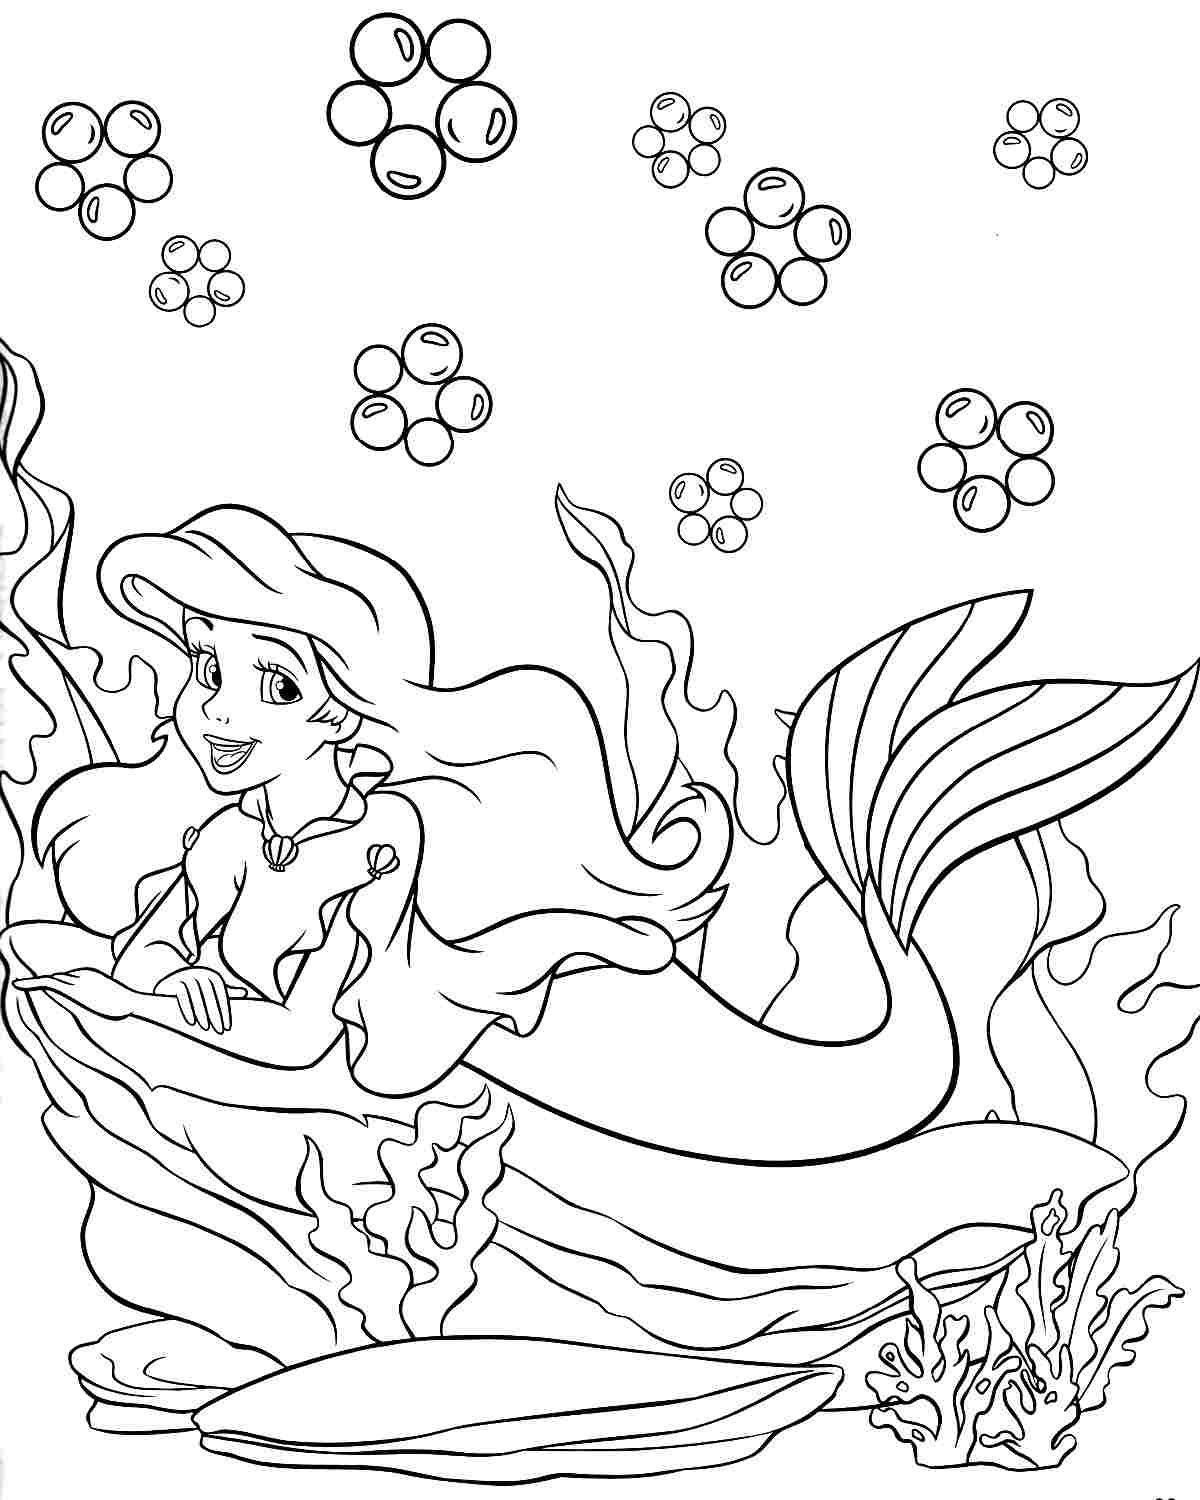 Disney Princess Winter Coloring Pages From The Thousands Of Pictures Online In Re Ariel Coloring Pages Disney Princess Coloring Pages Princess Coloring Pages